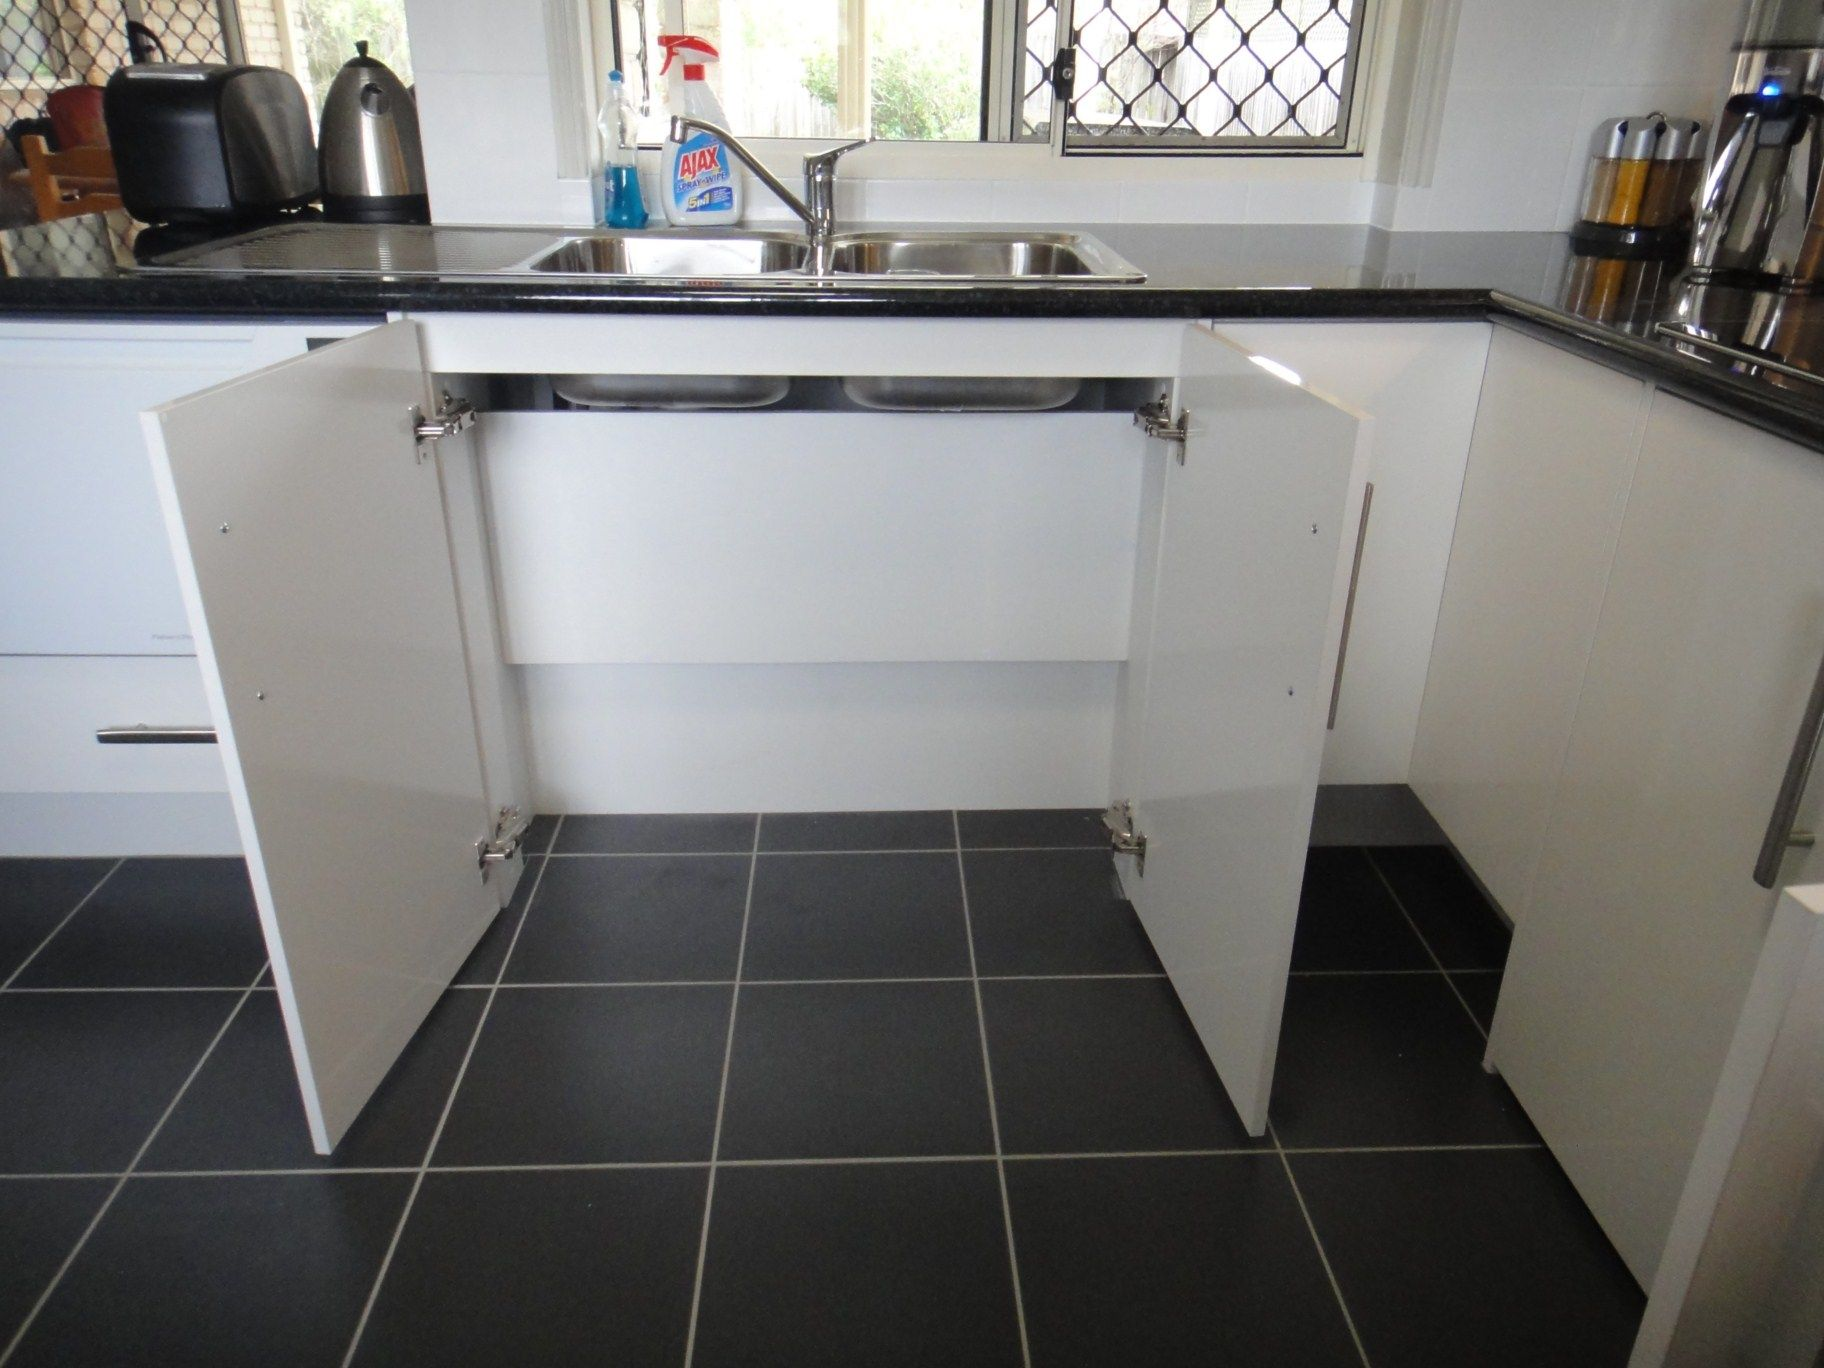 Wheelchair Accessible Kitchen Cabinets: Wheelchair Accessible Kitchen Sink - Google Search